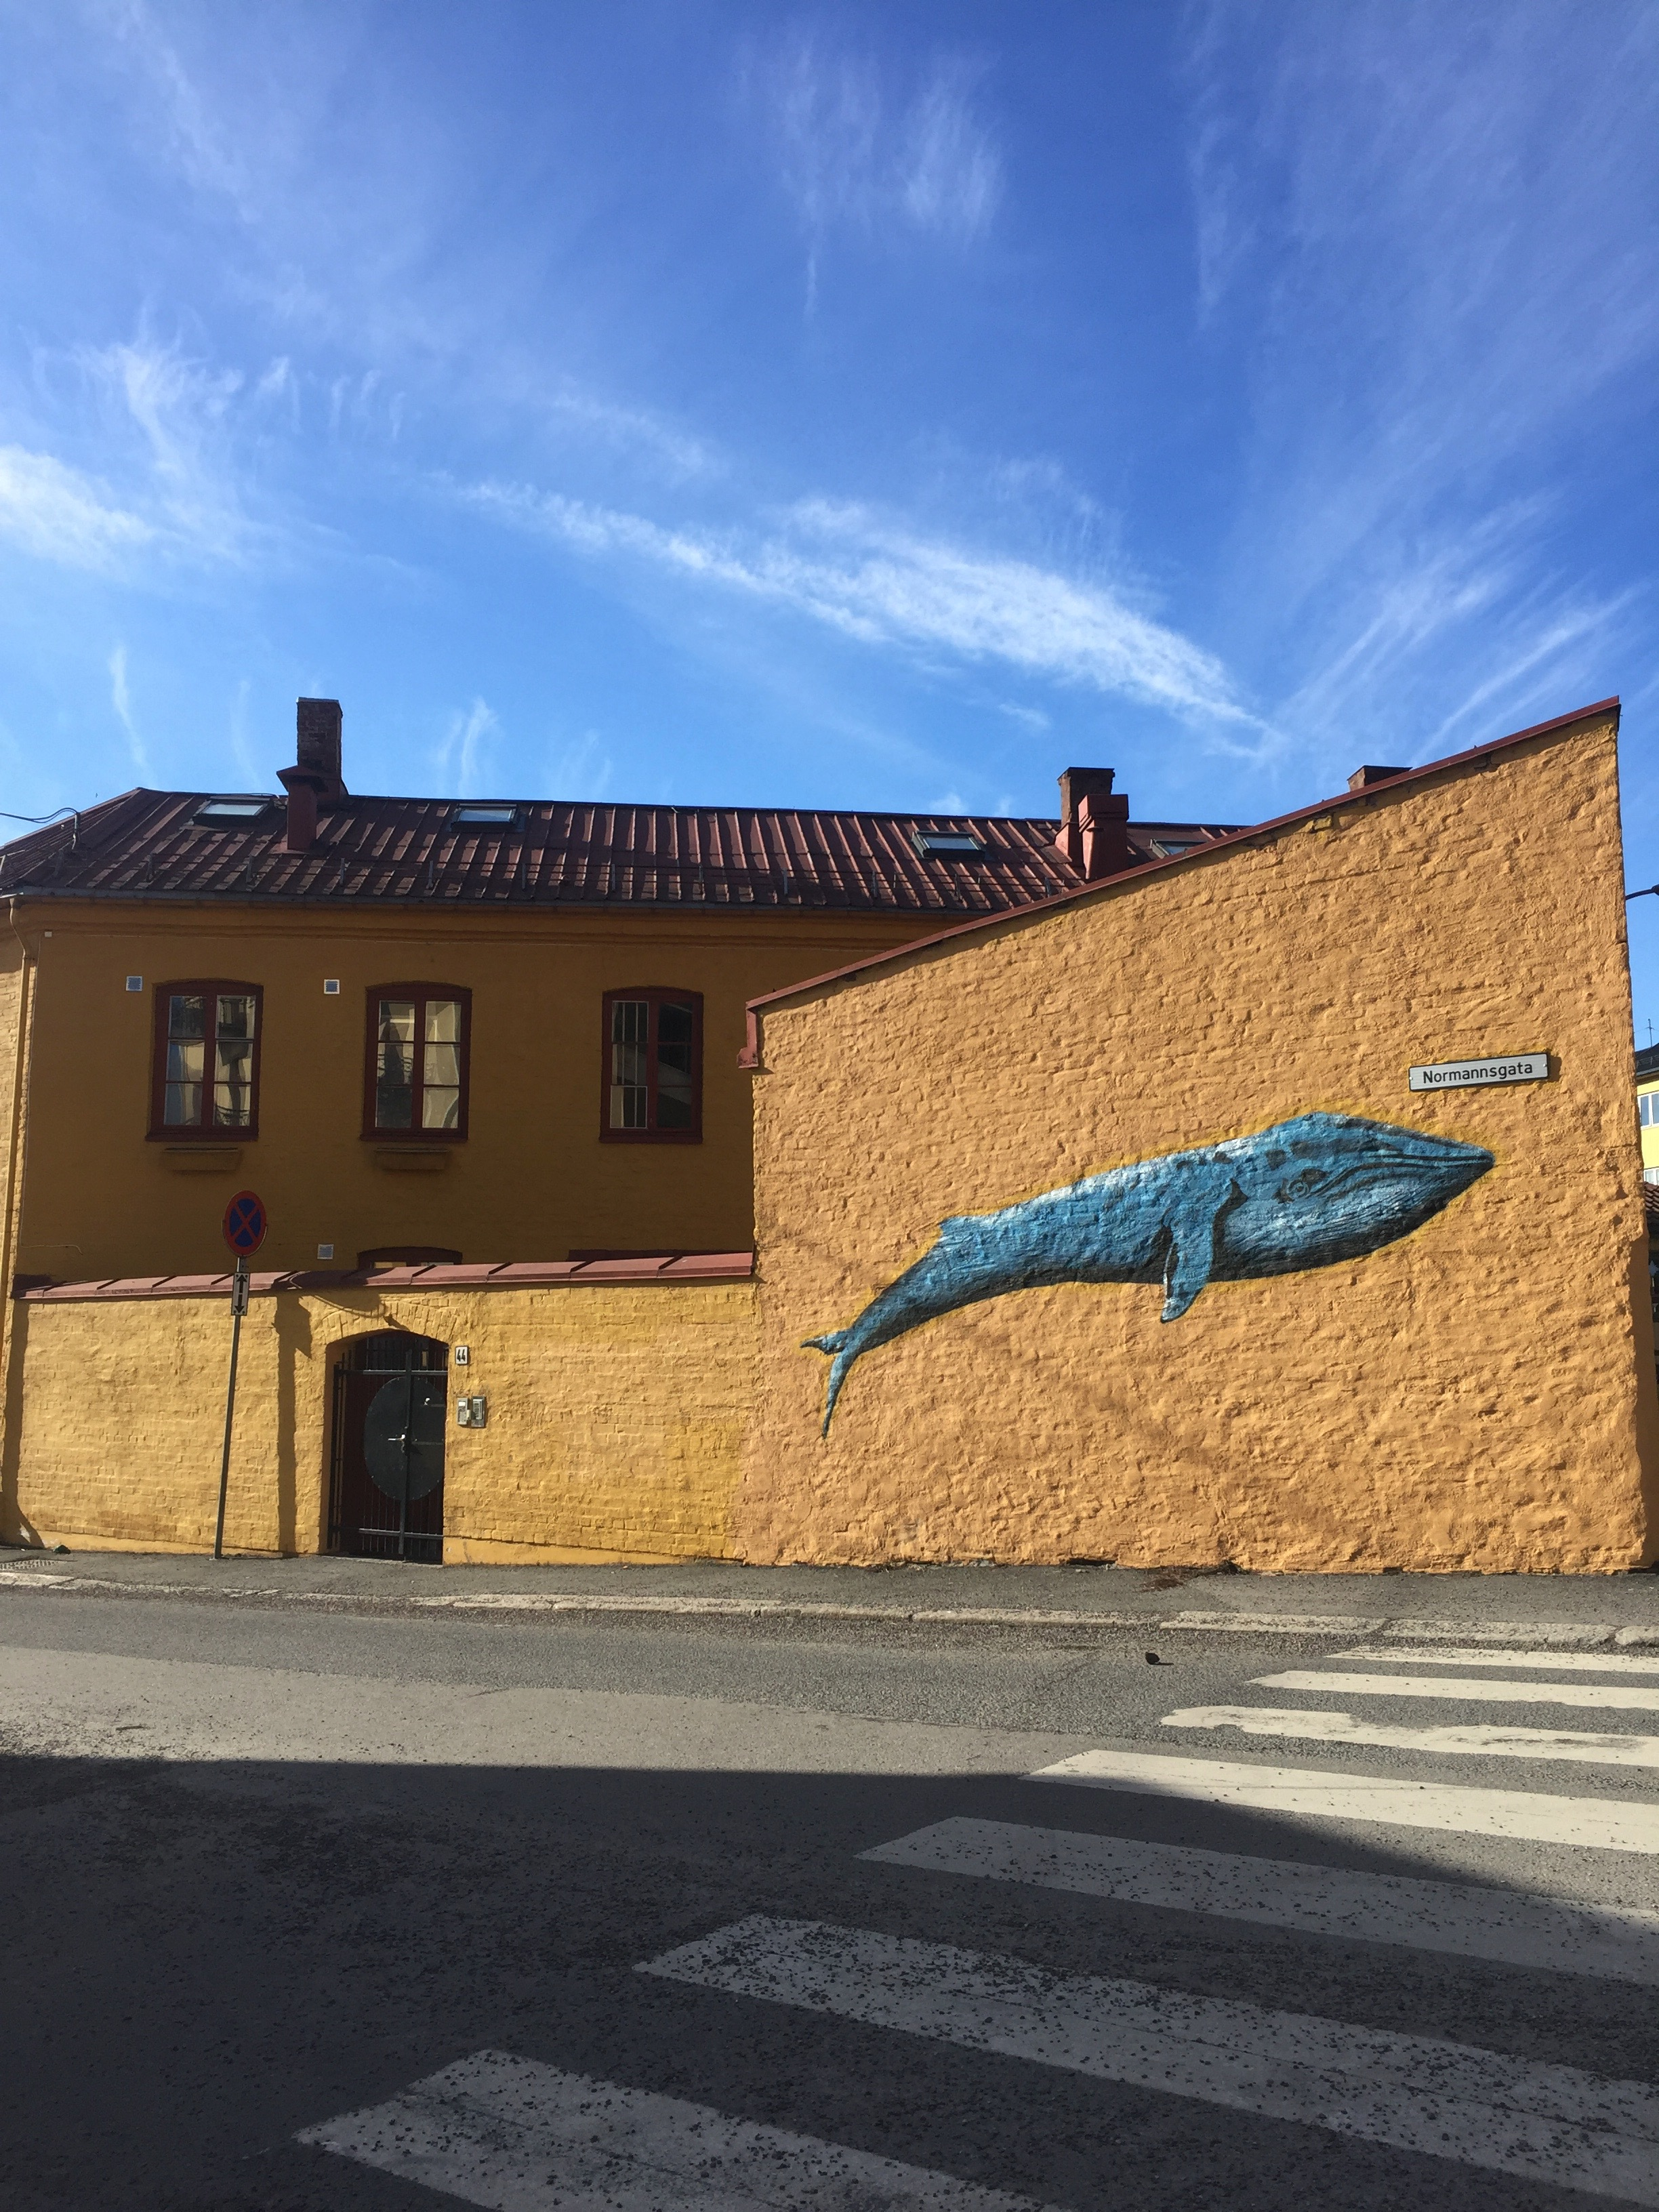 Photo: The whale on the wall, Kampen, Oslo, Norway Photo by: Ingrid S. Nyhus